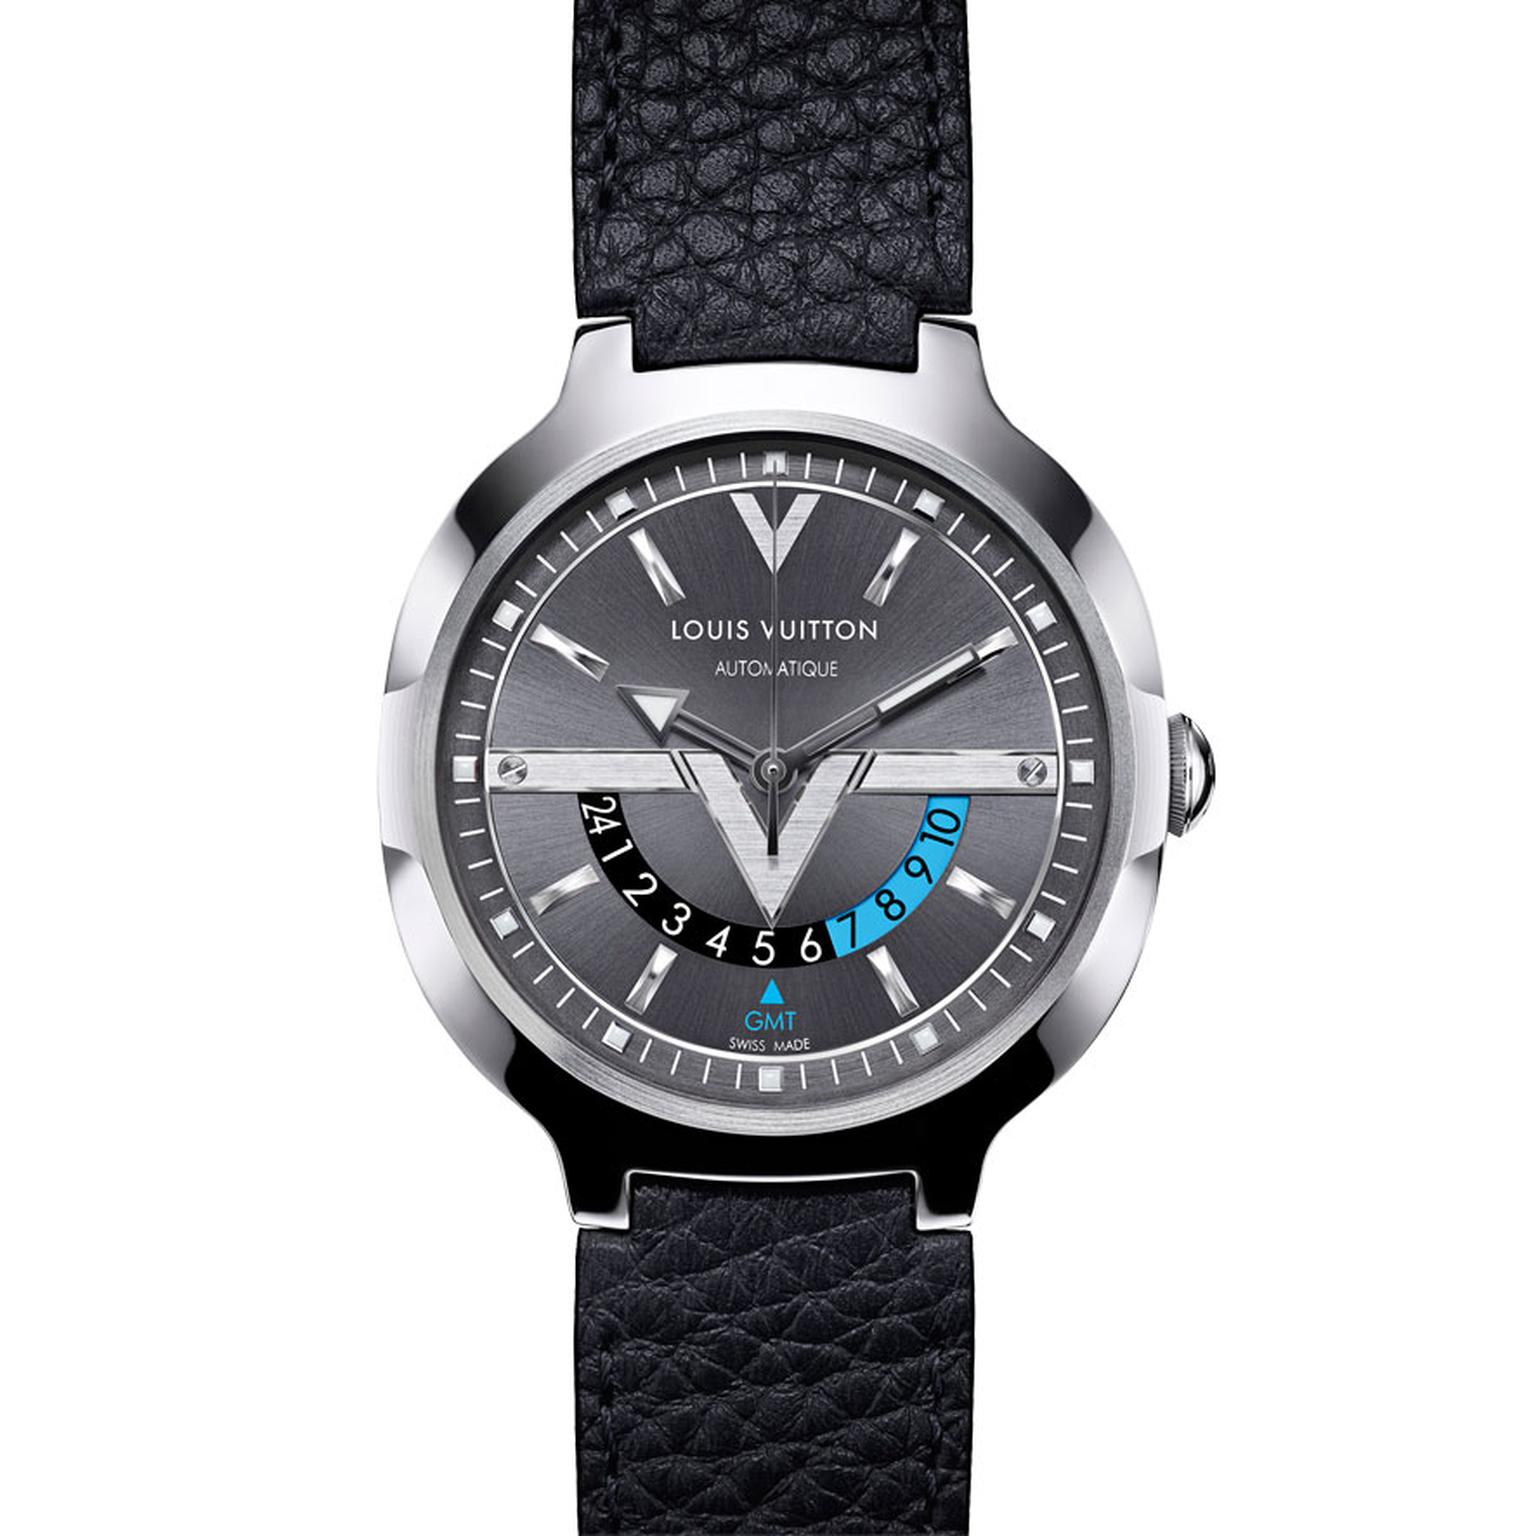 Louis Vuitton Voyager GMT watch in steel with a leather strap